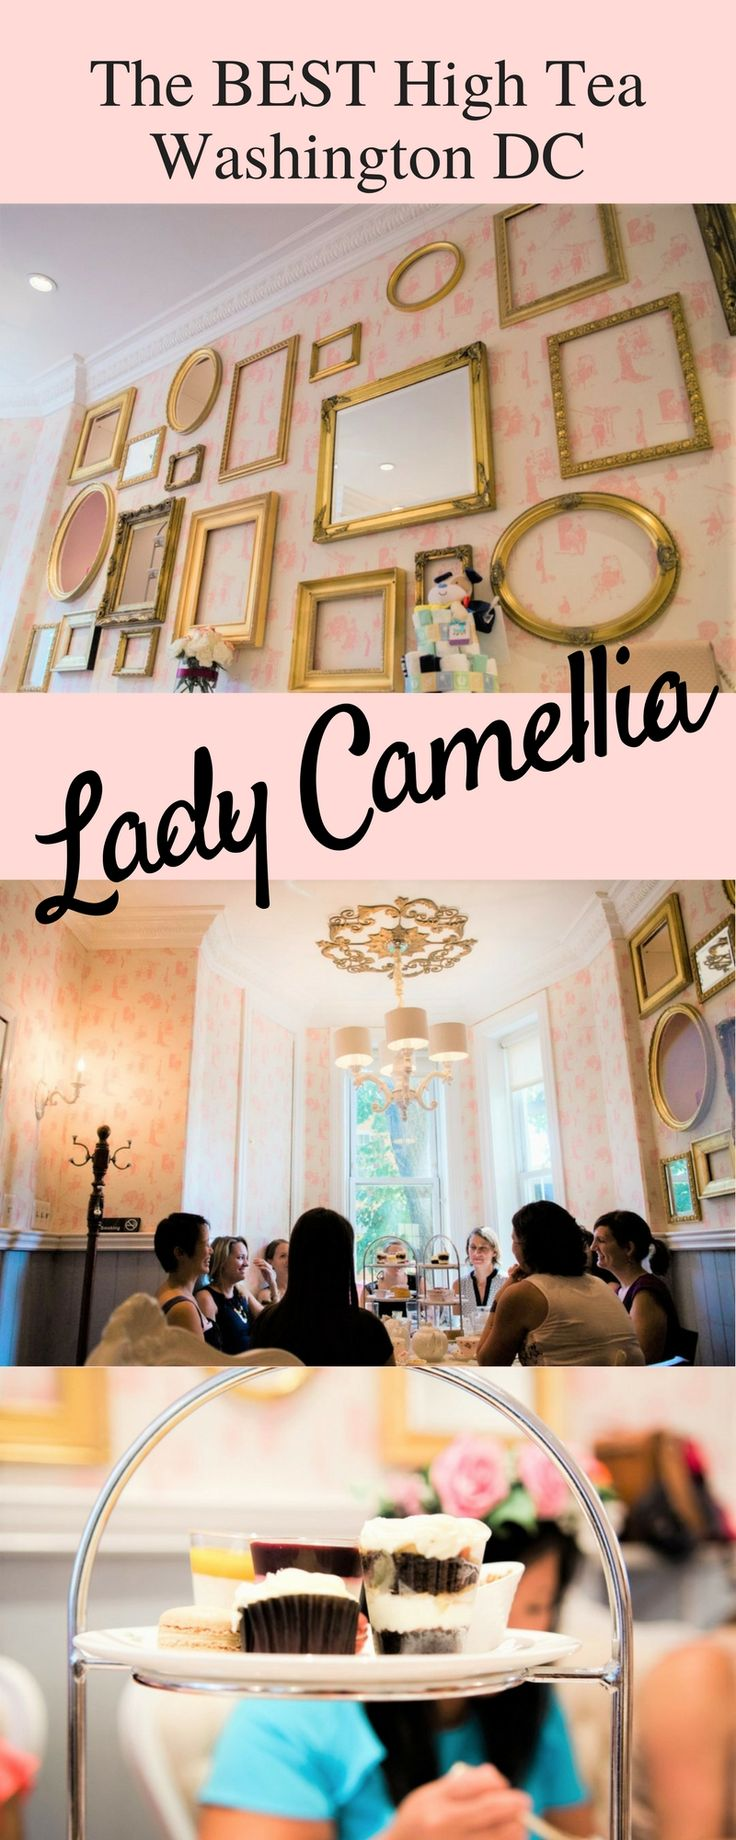 Best place for high tea in Washington DC, Lady Camellia